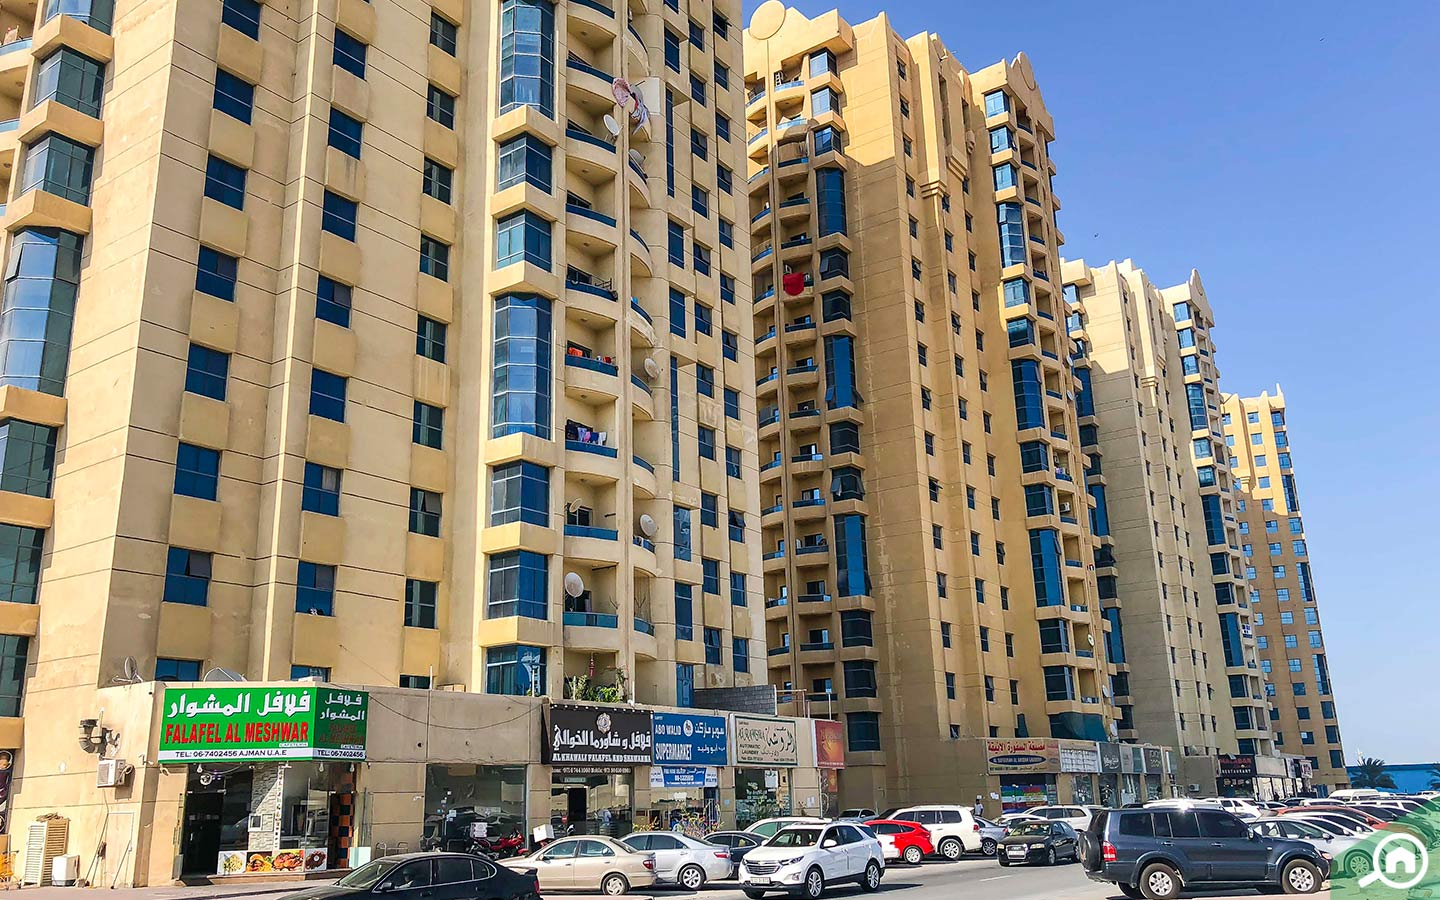 Apartments in Al Rashidiya